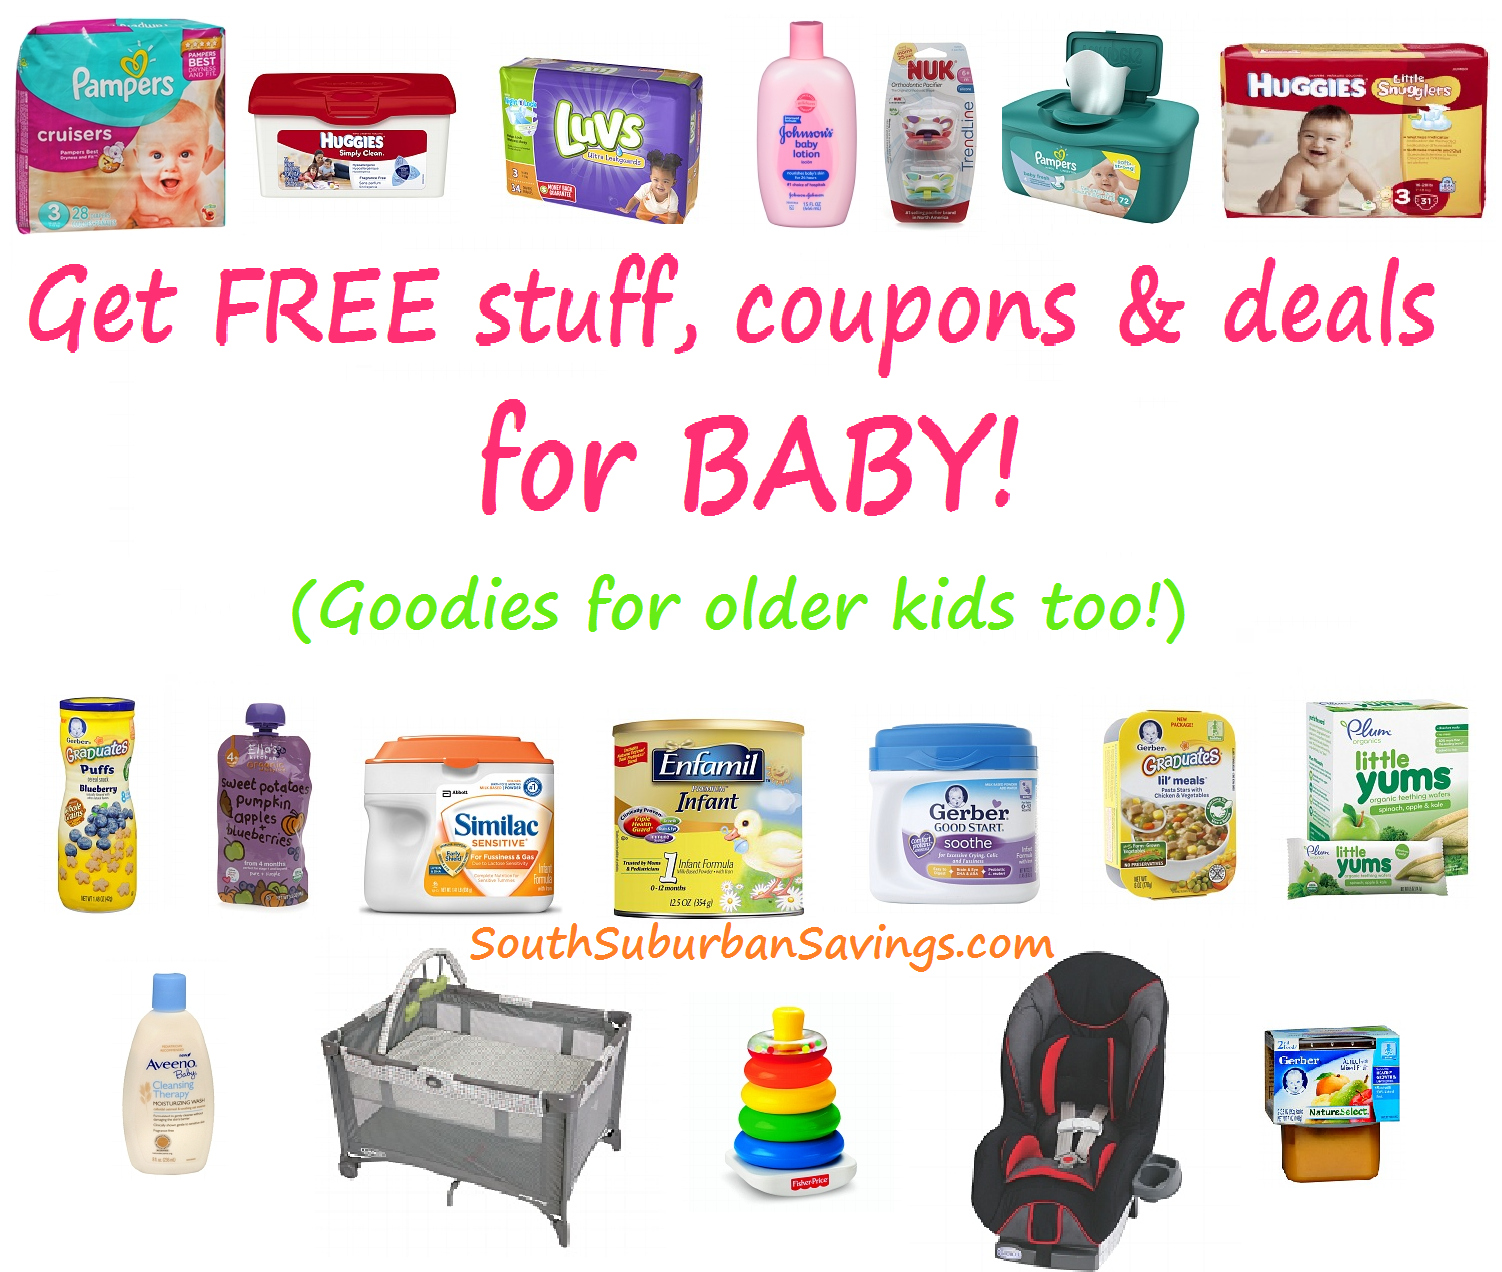 Get FREEBIES, HOT Deals, and Coupons for Babies & Older Kids!! (Save on Gerber, Huggies, Pampers, Enfamil, Fisher Price & MORE!)